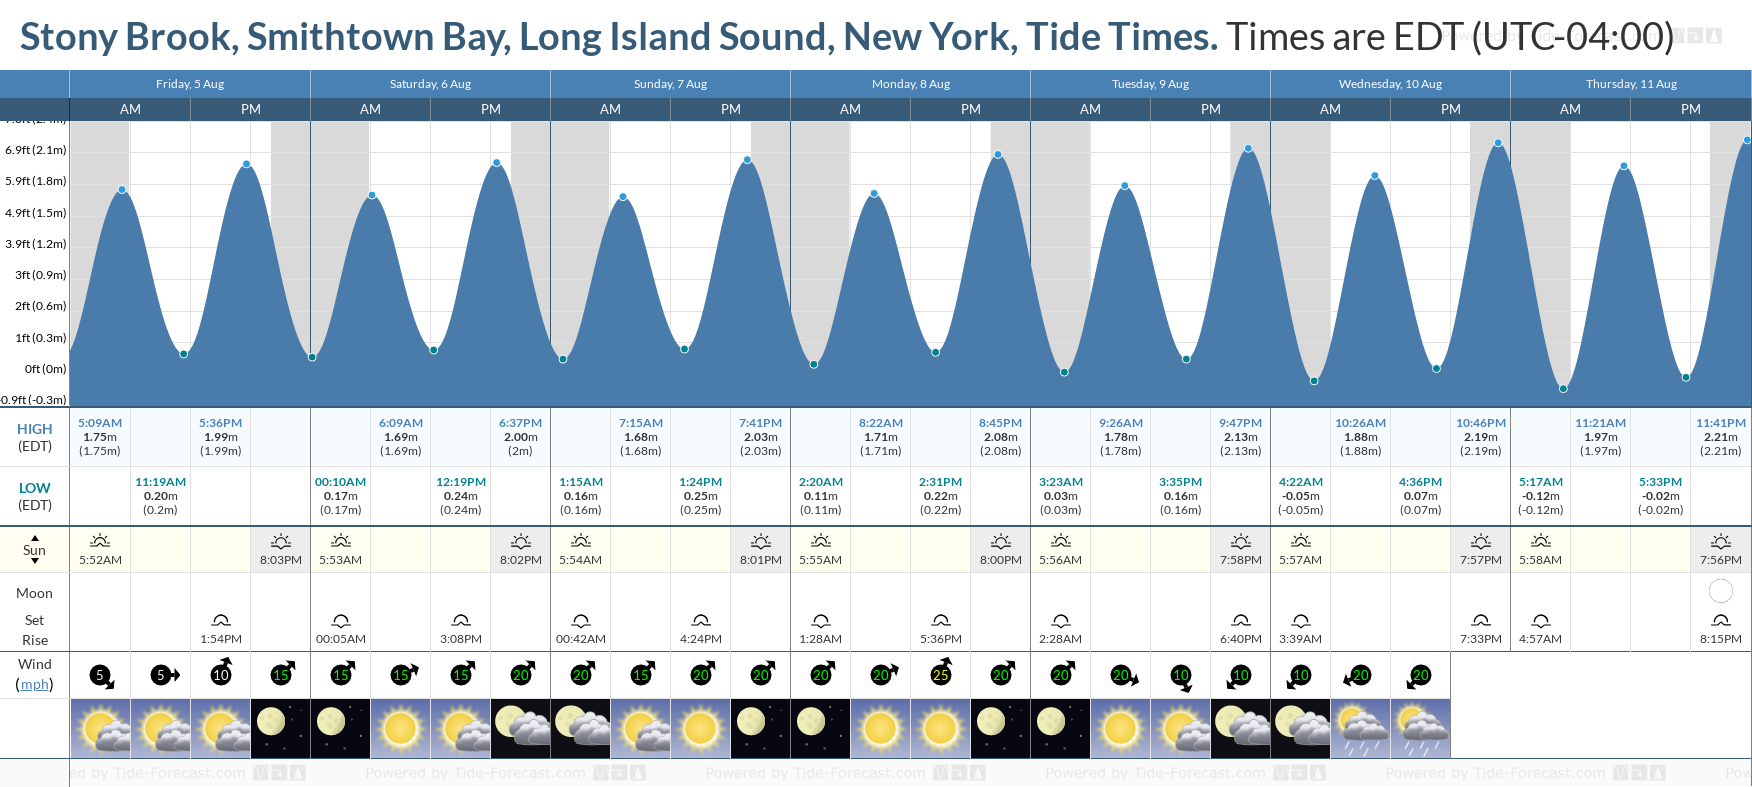 Stony Brook, Smithtown Bay, Long Island Sound, New York Tide Chart including high and low tide tide times for the next 7 days